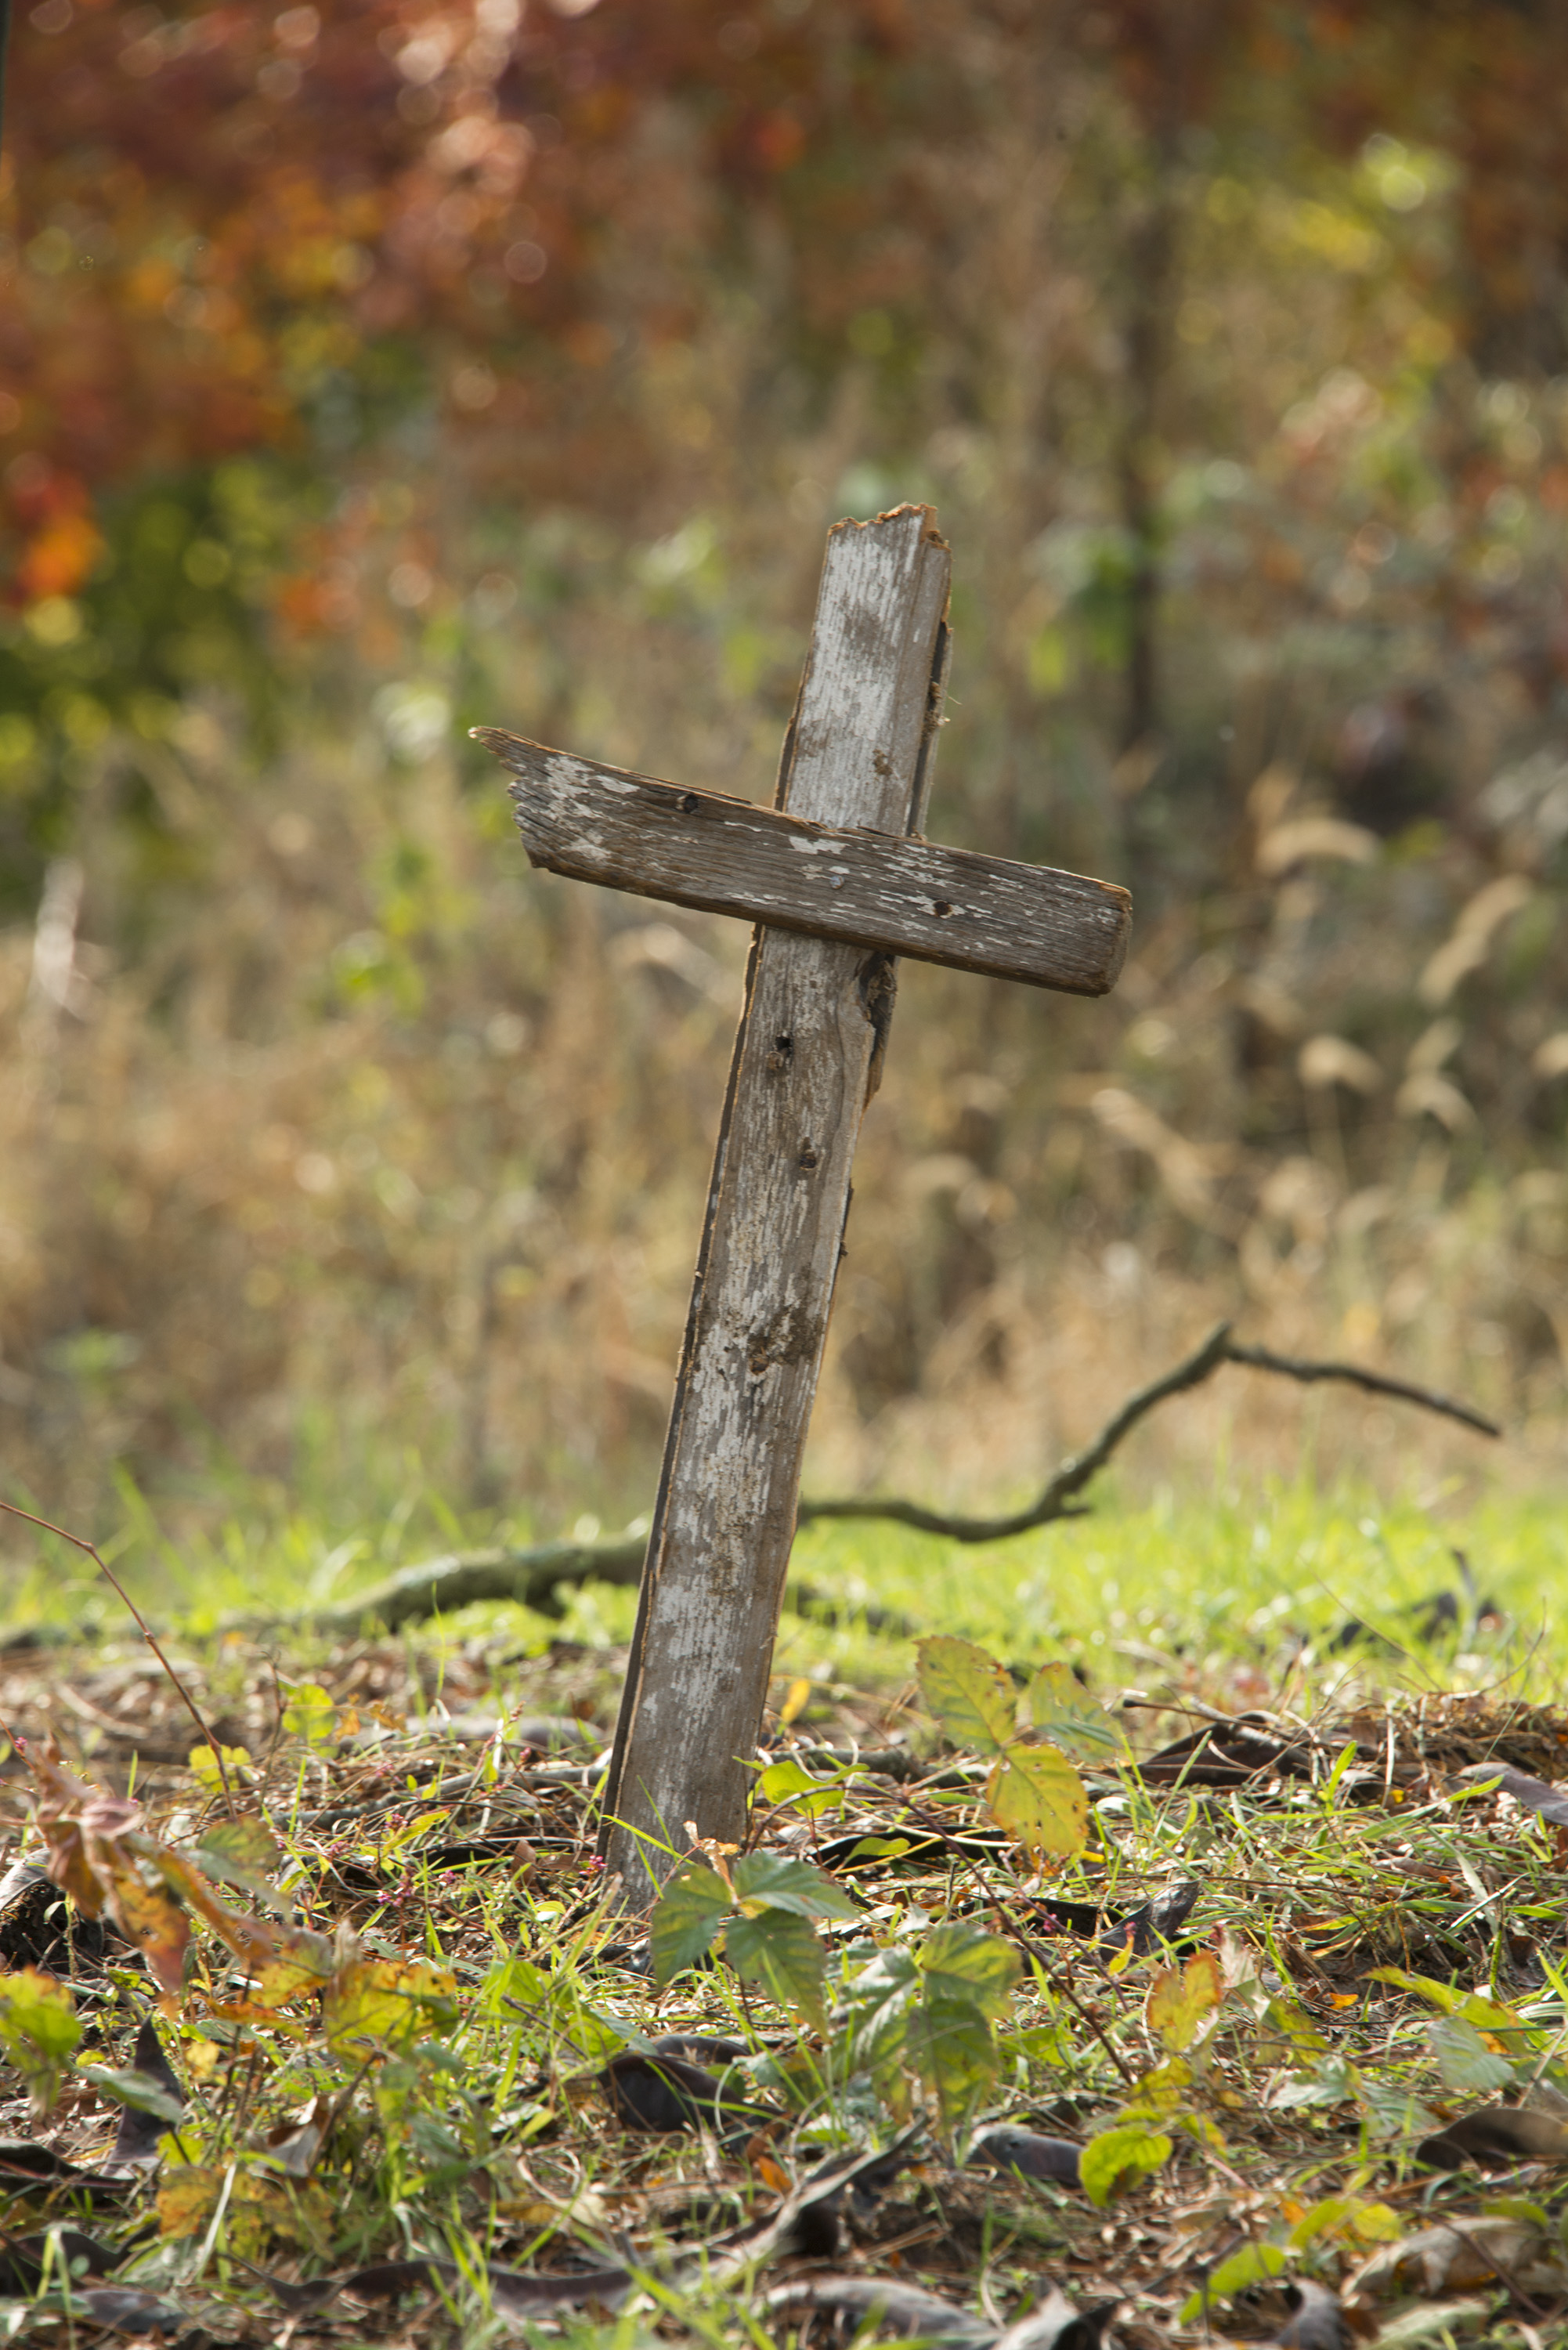 The Wooden Cross